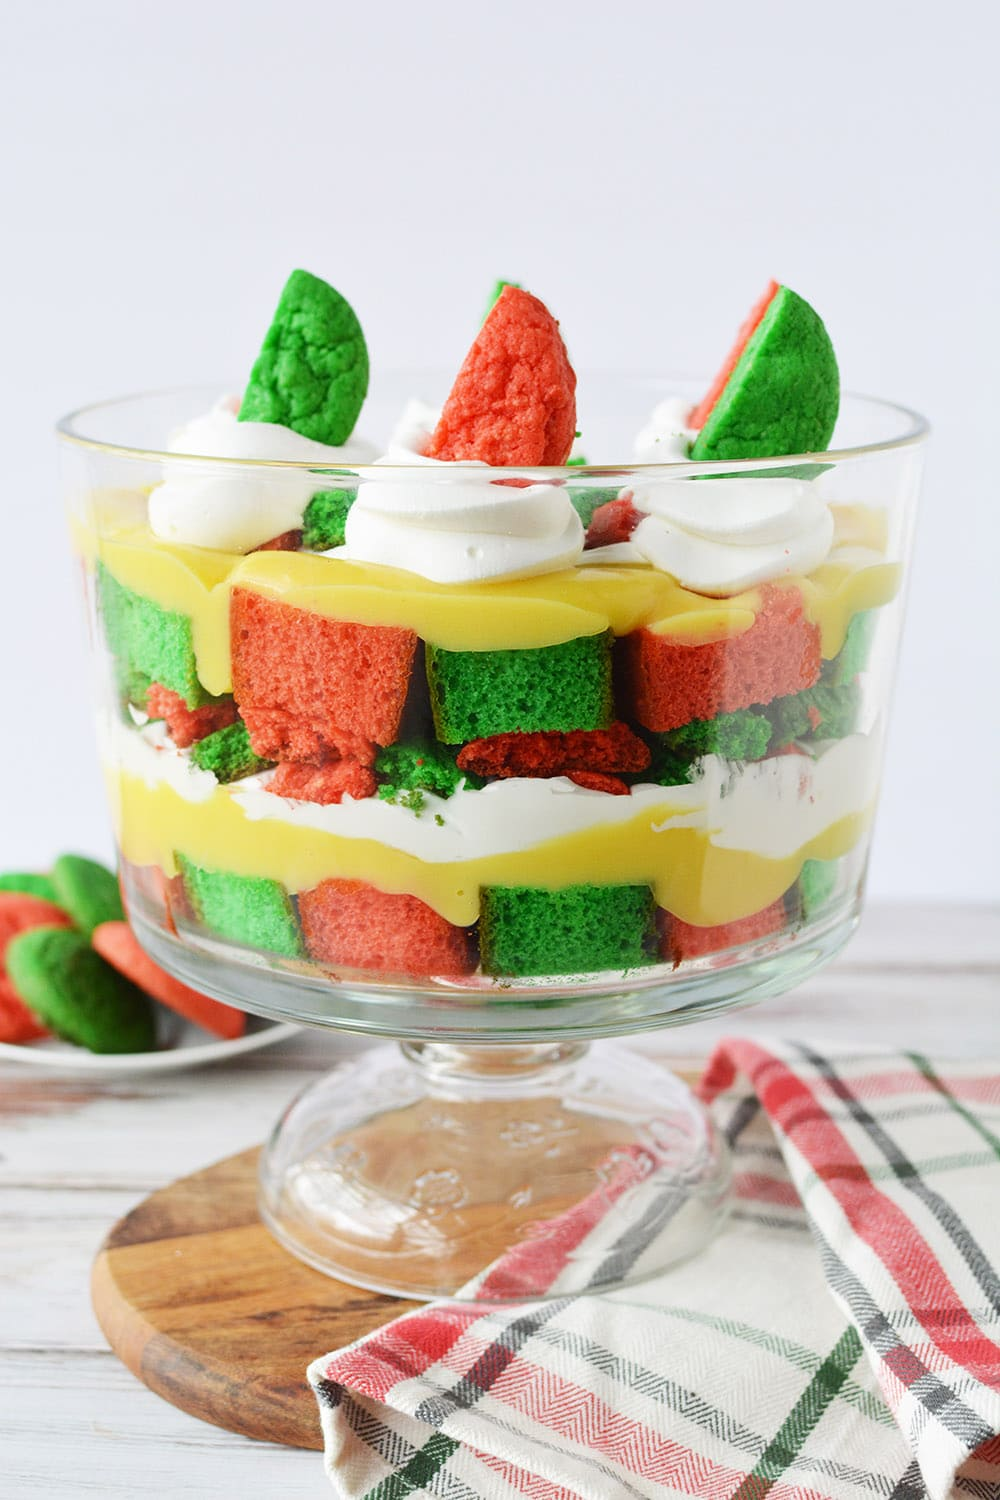 Layers of red and green cake, cookies, whipped cream, and pudding in a trifle dish.